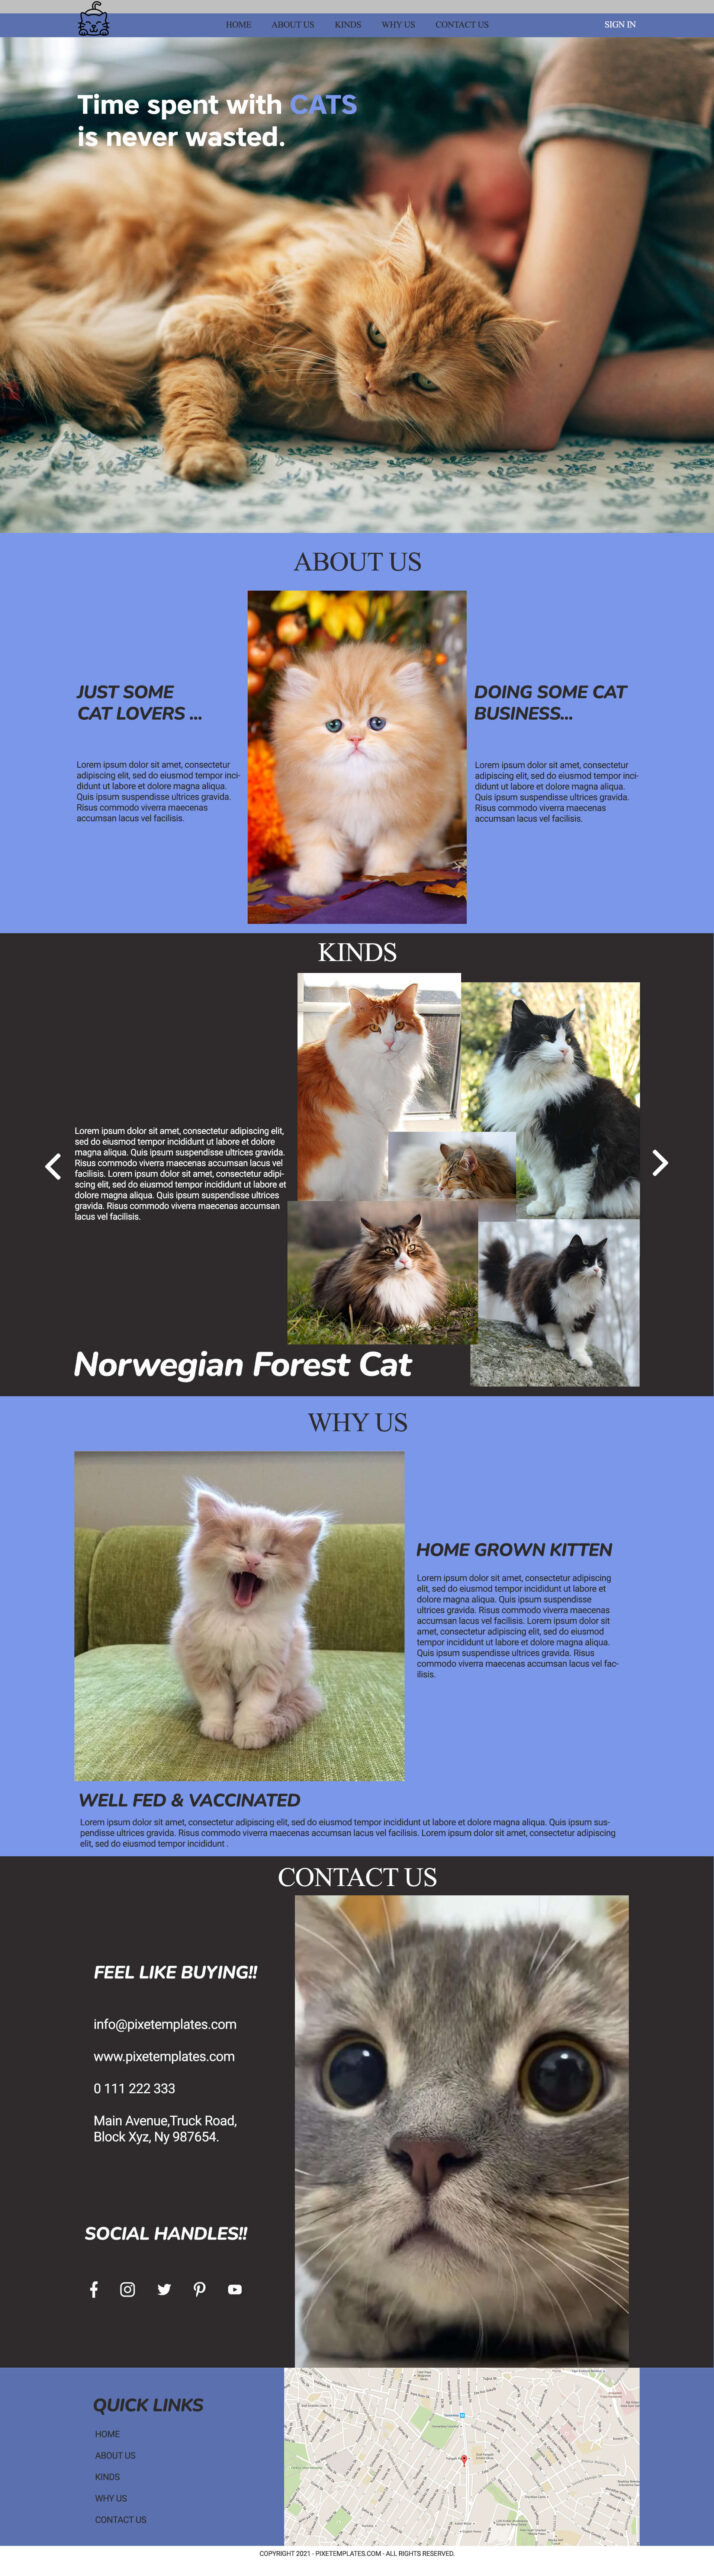 Free Website Template for Cat Owners in PSD Format